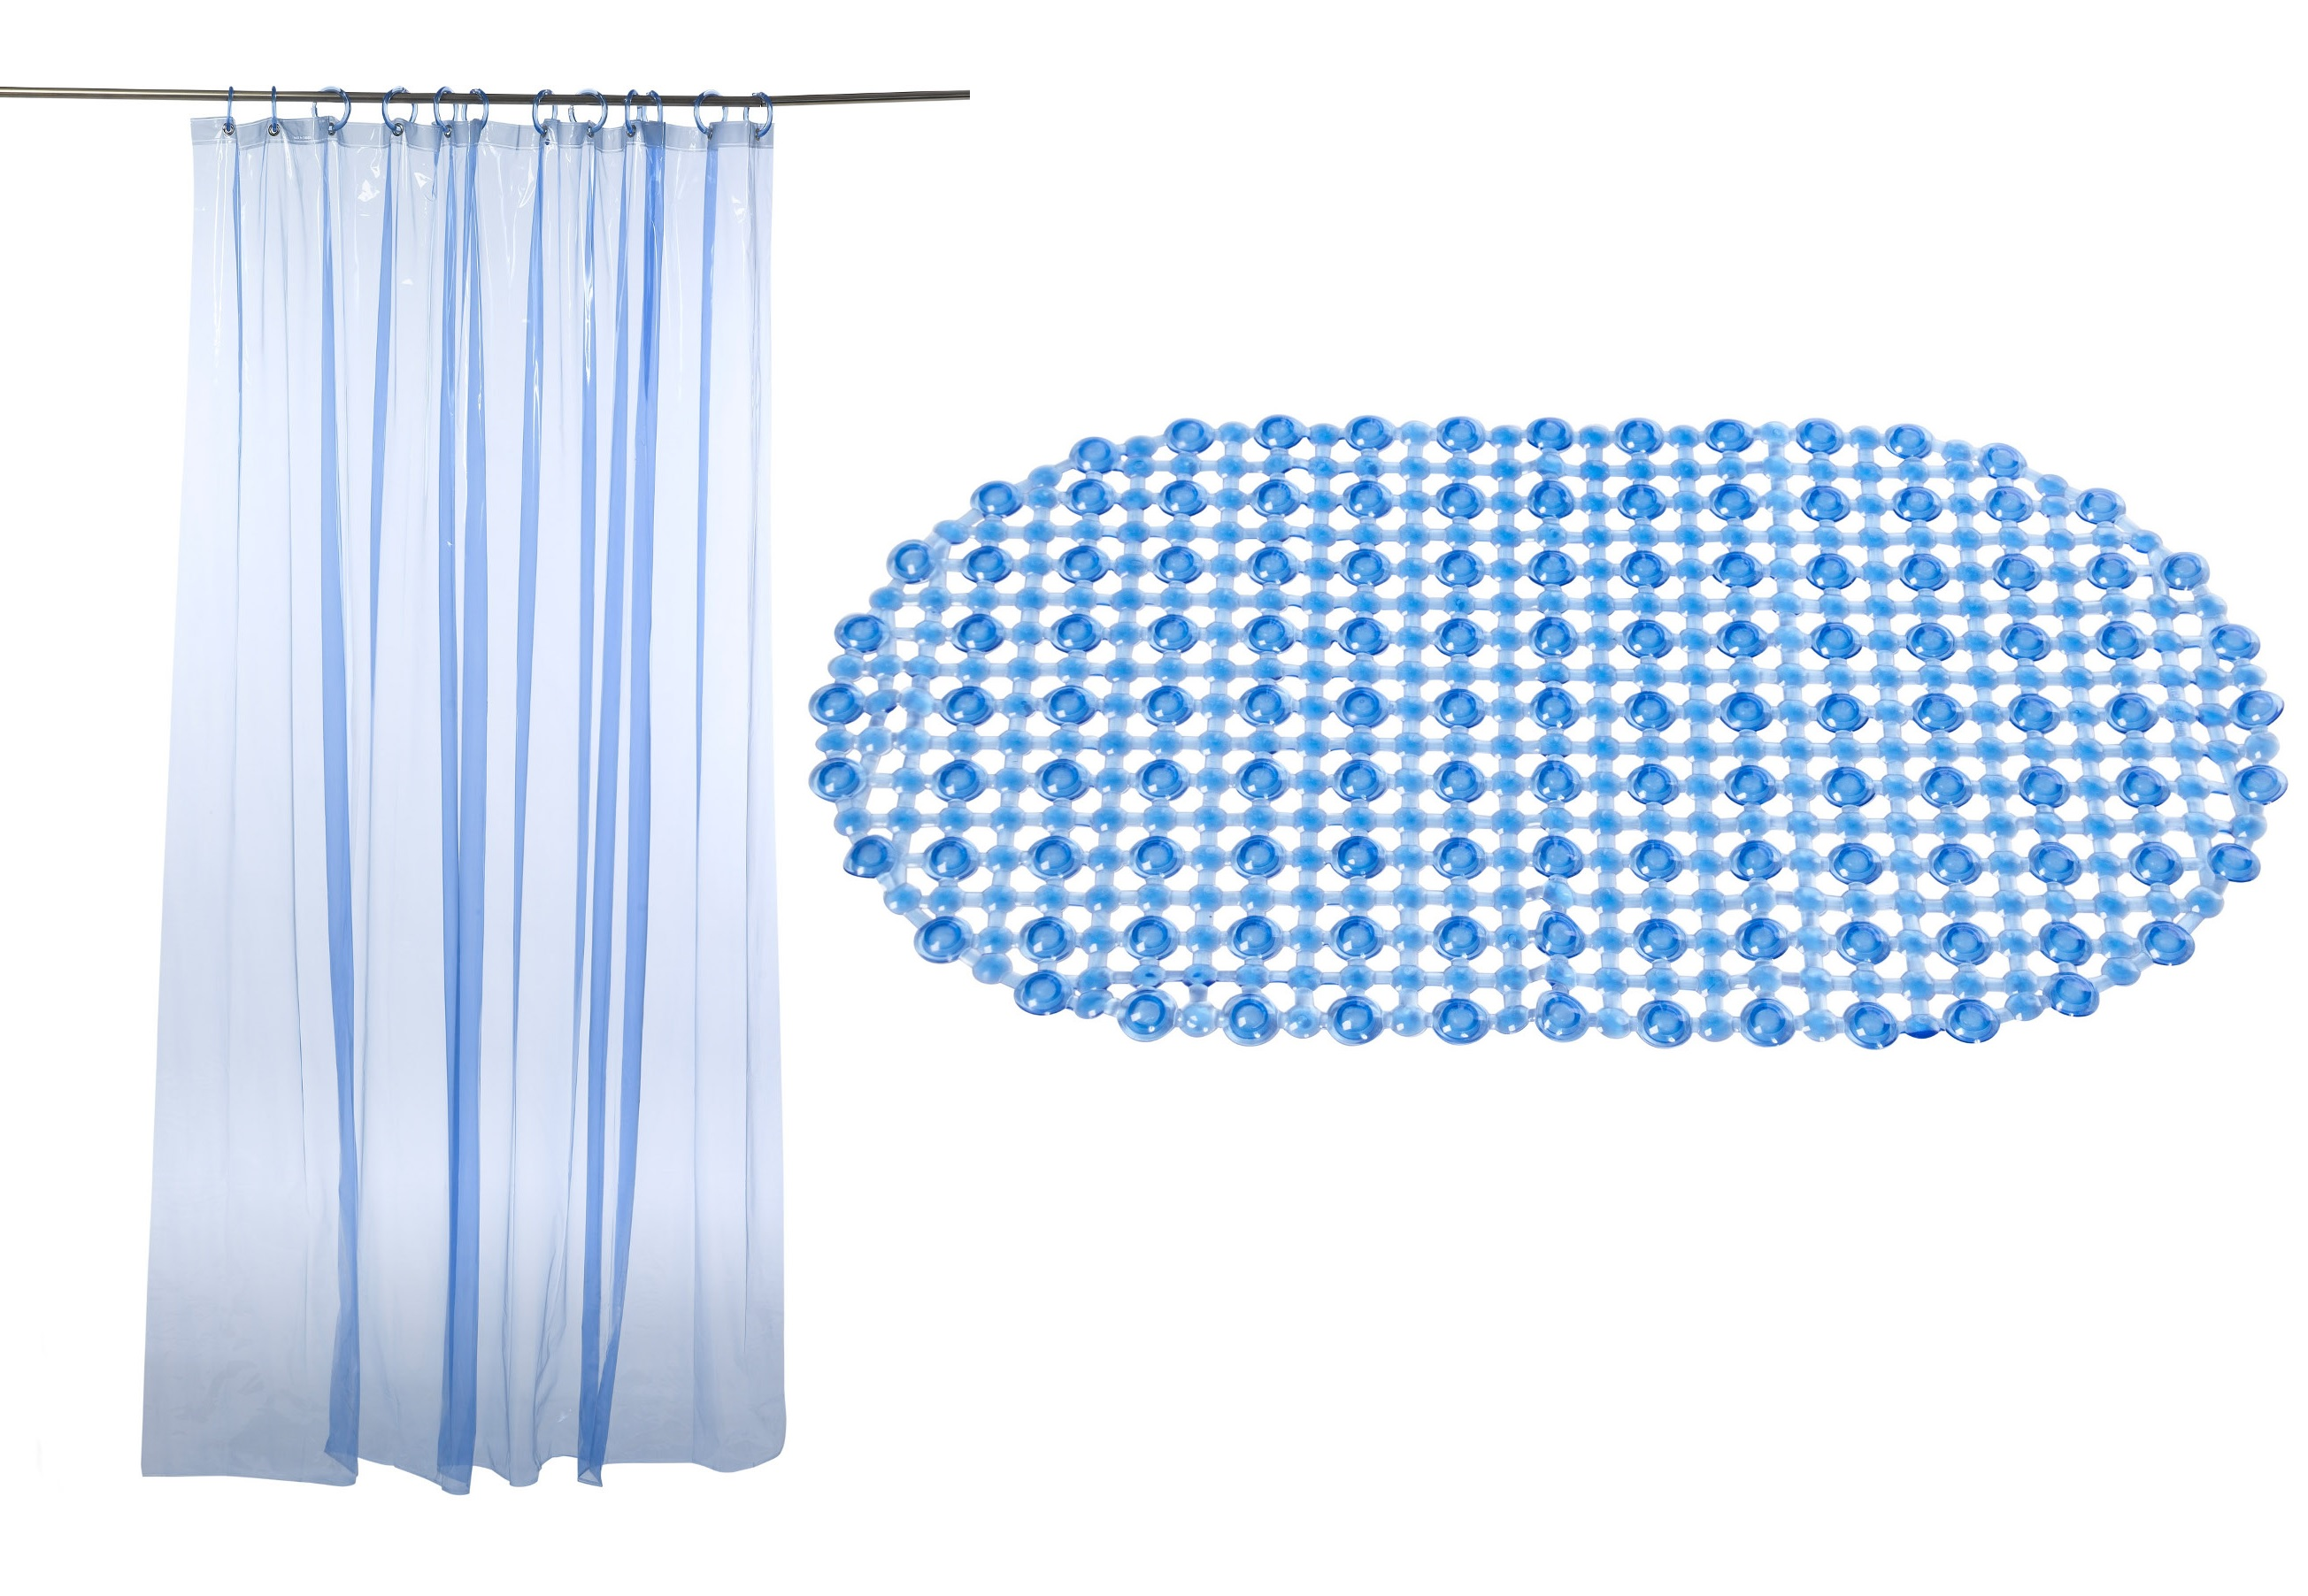 Cleaning a plastic shower curtain